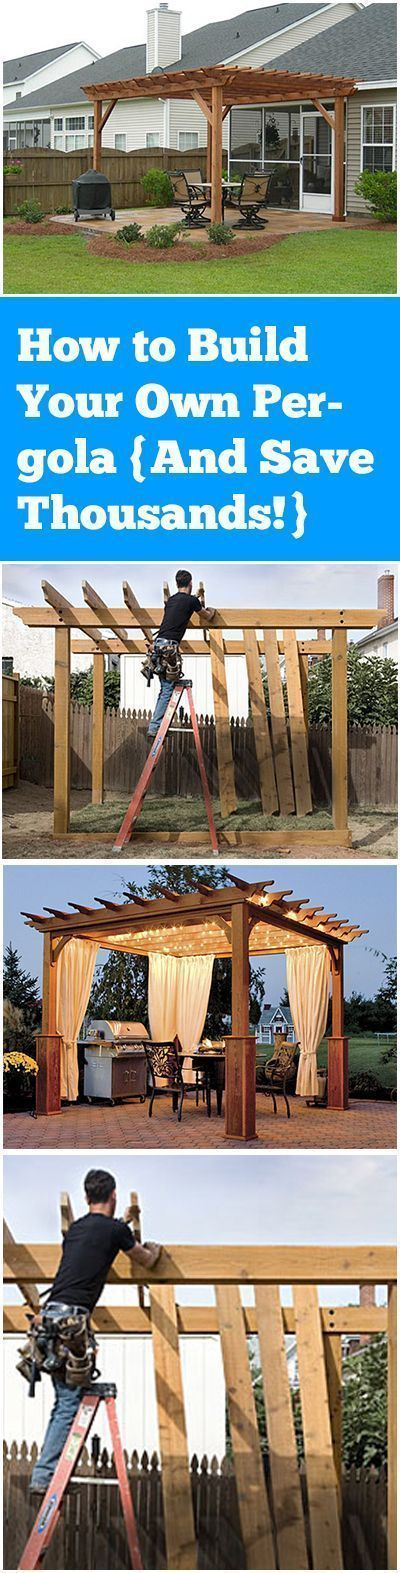 How to Build Your Own Pergola {And Save Thousands